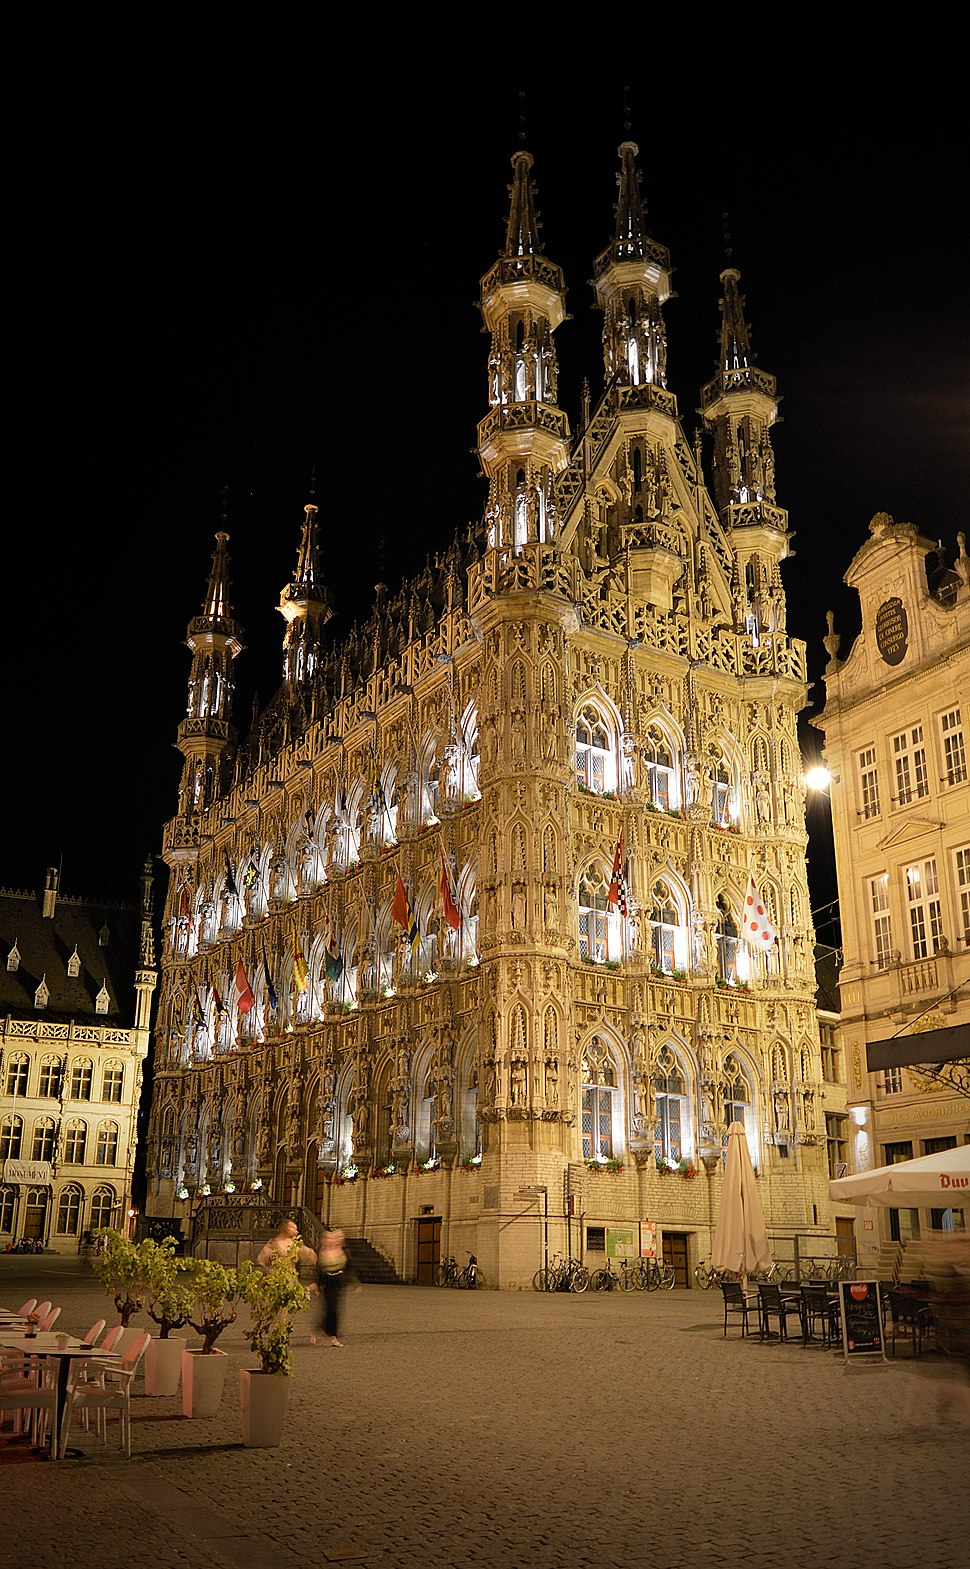 Leuven City Hall, looking up from base at night